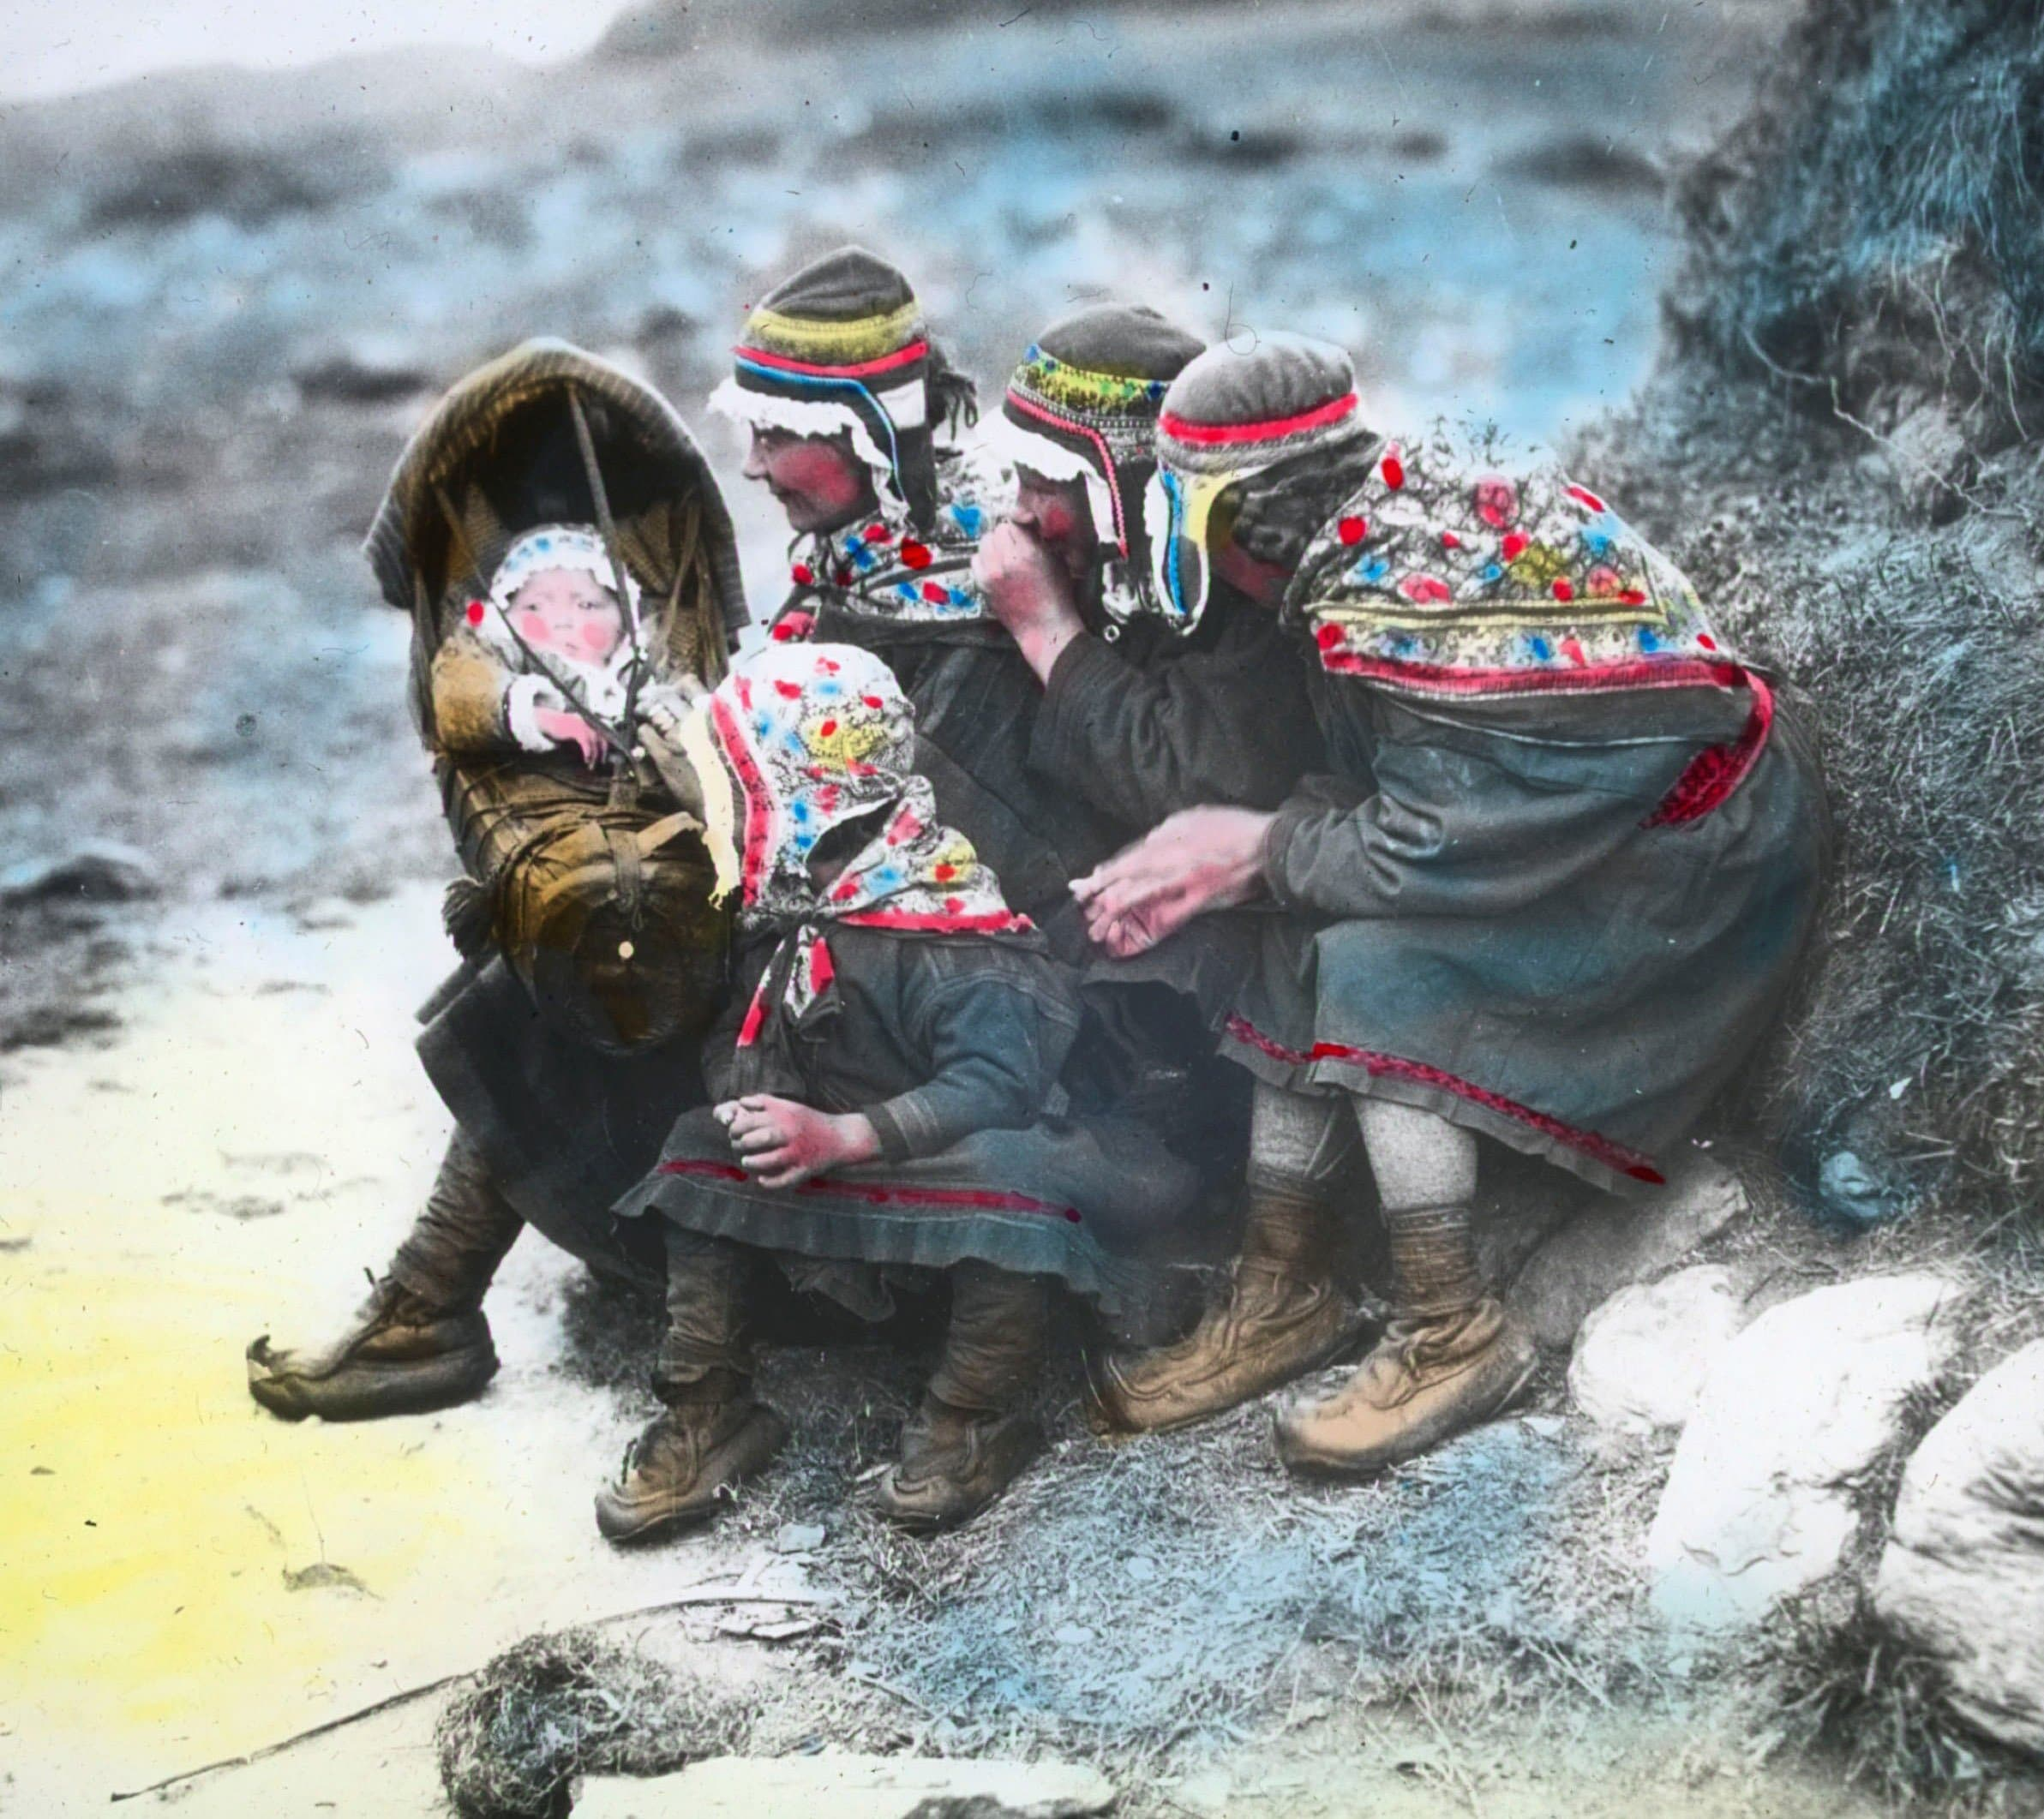 Group of Sami women and children - probably from the Swedish side of the border. The baby is strapped in a so-called «komse», carried on the mother's back when walking. Finnmark, Norway. Hand-coloured photo. | Photo: Alf Schrøder co - digitaltmuseum.no FBib.01005-056 - Public domain.